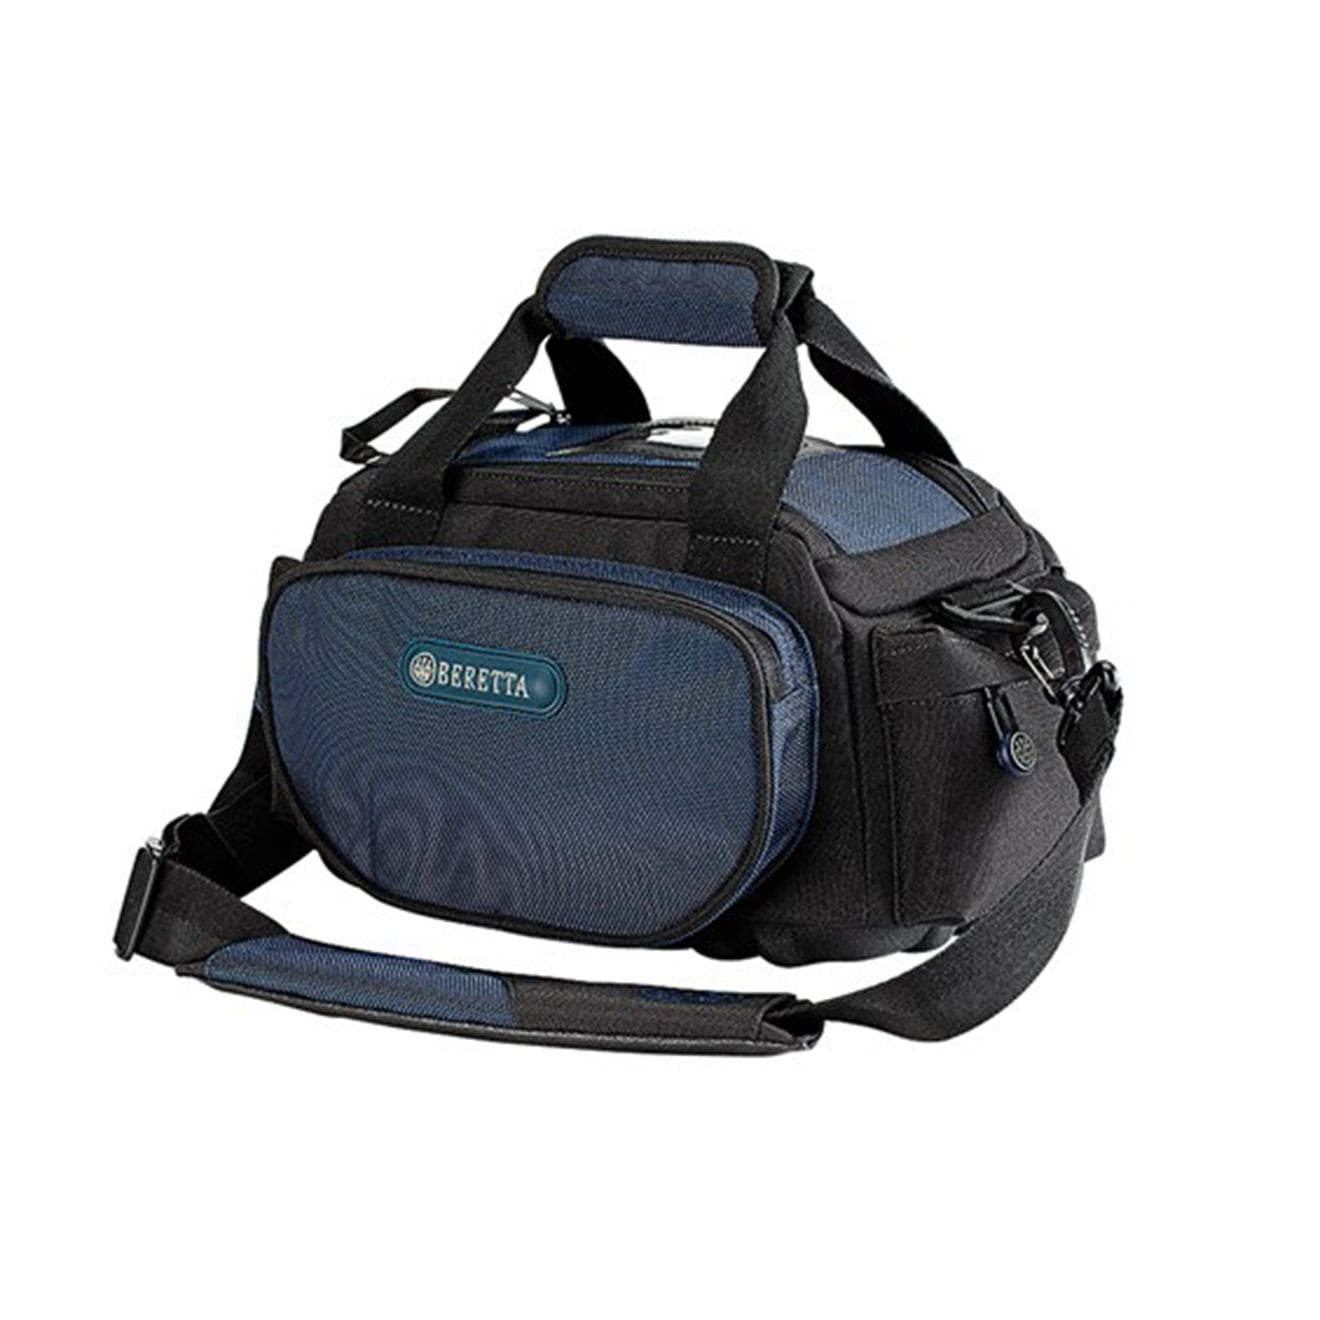 beretta high performance range bag small 4 box blue insignia